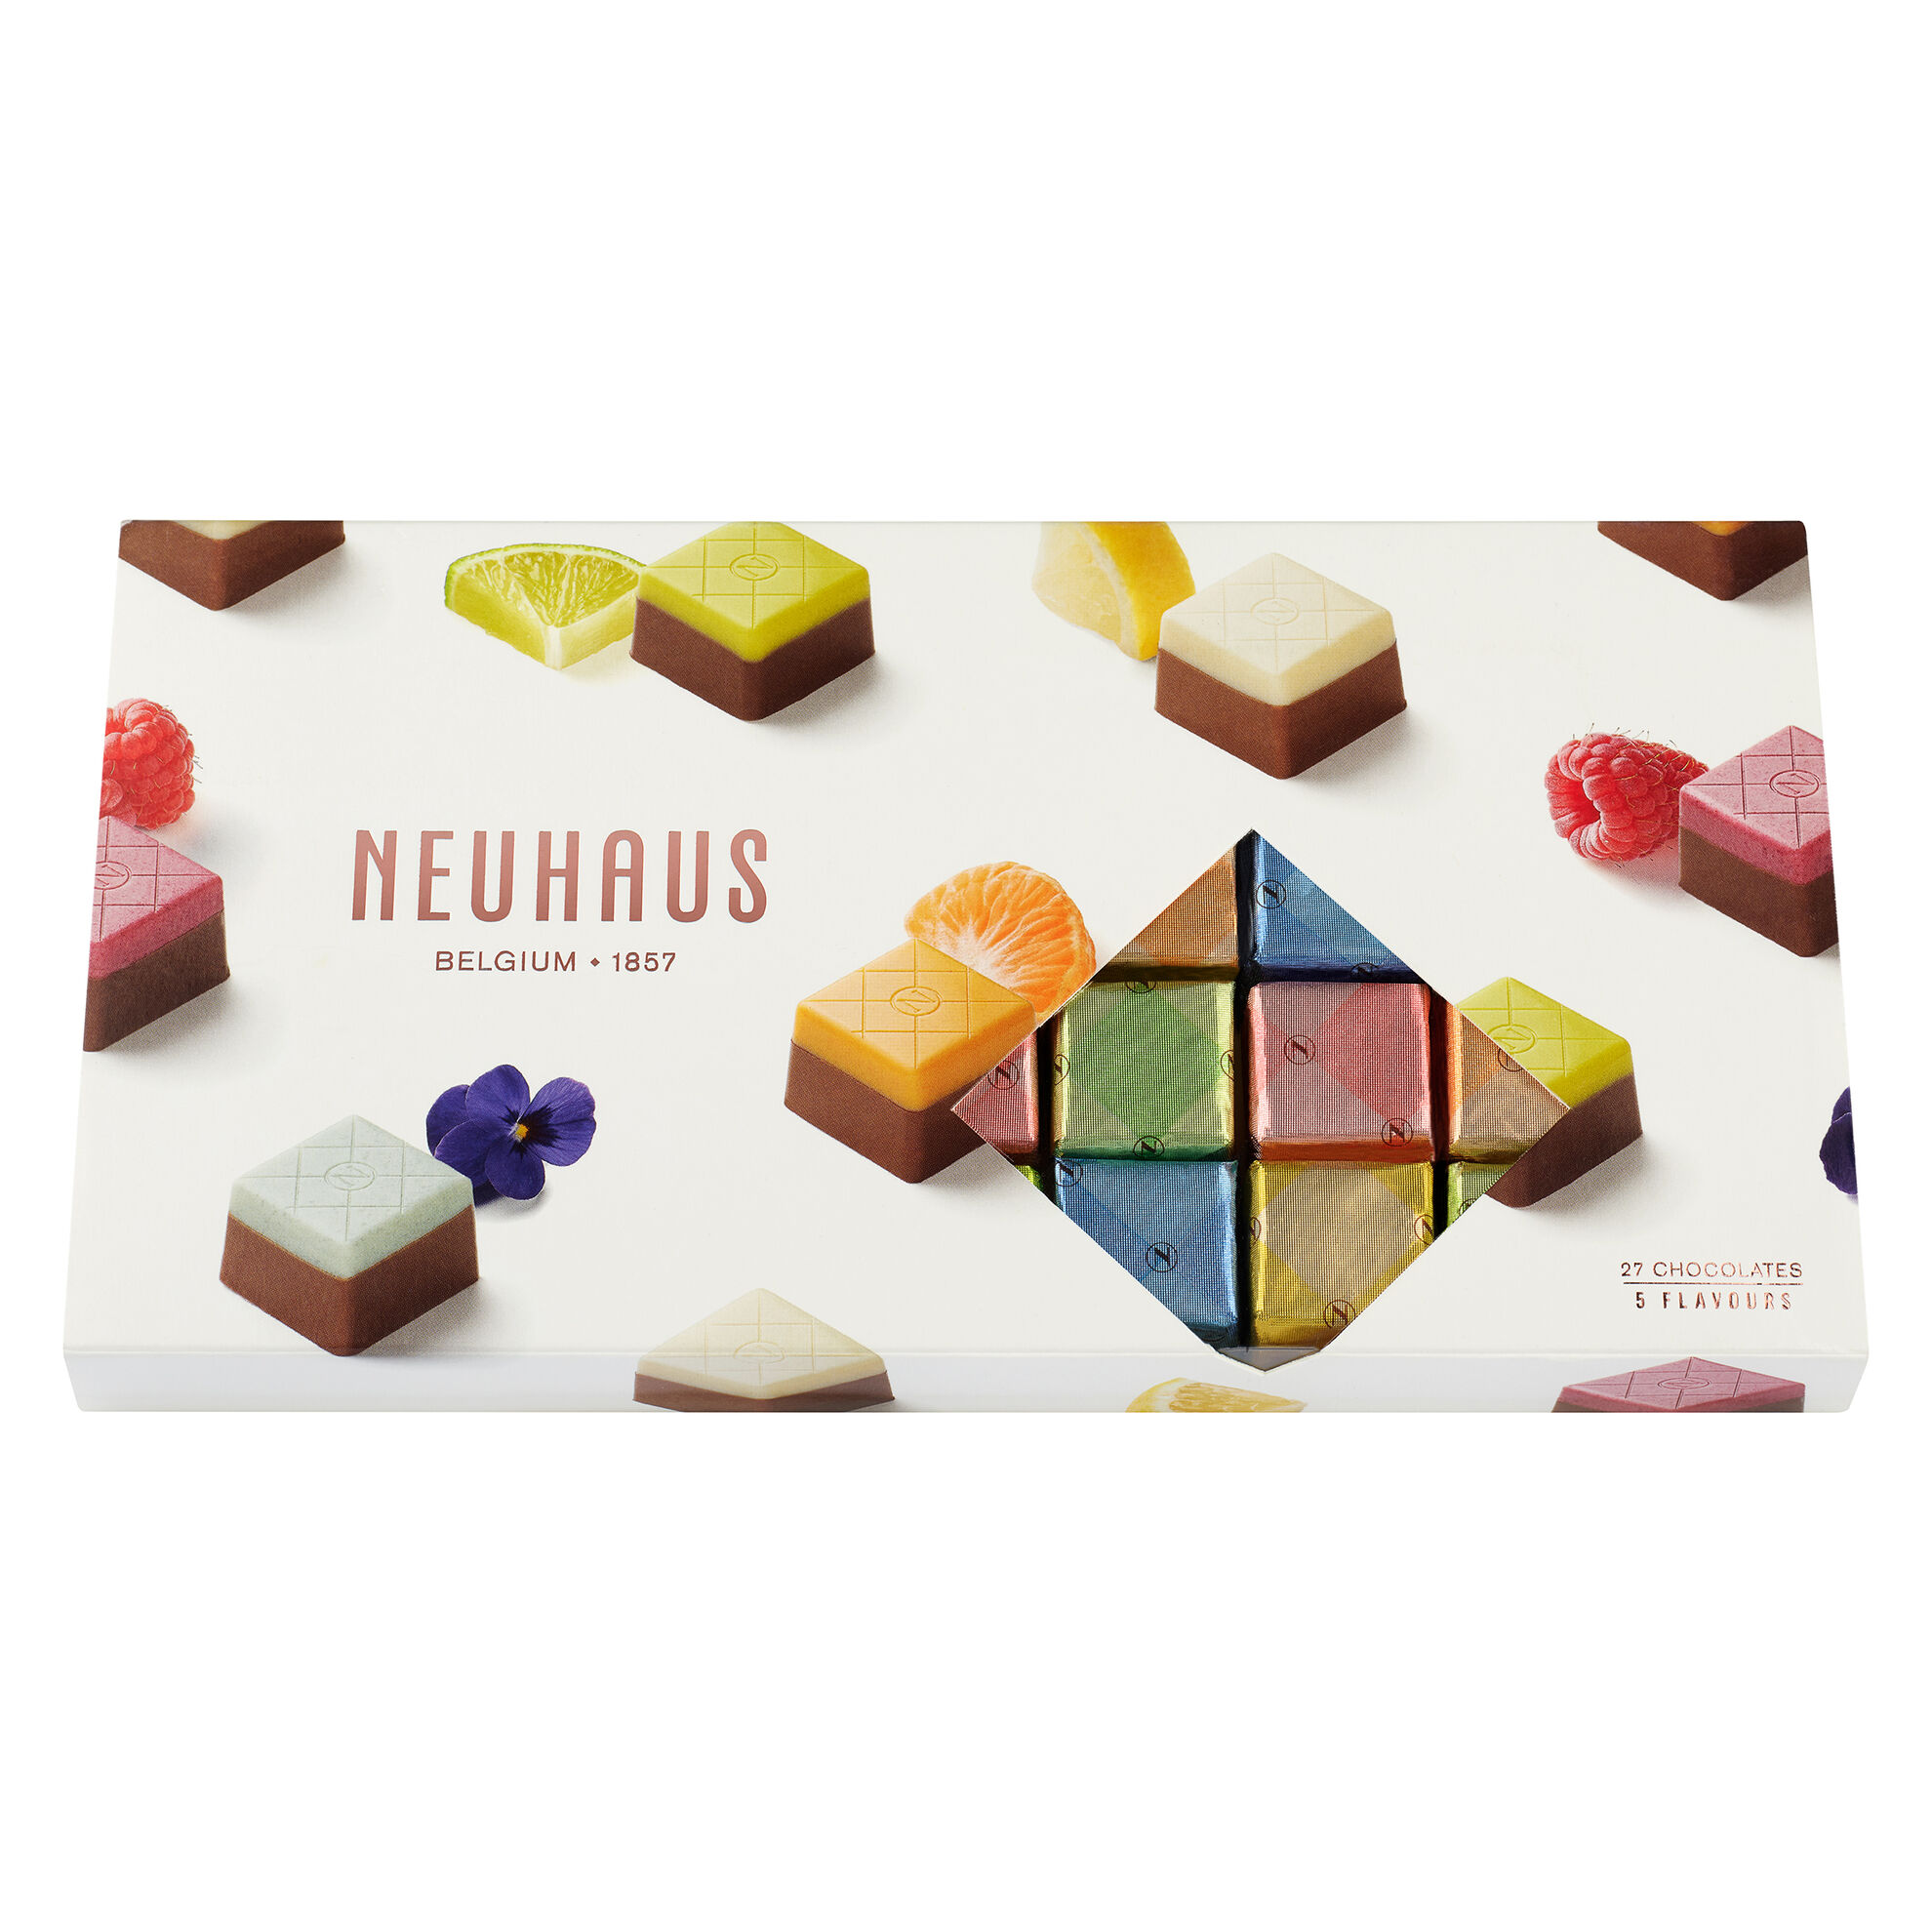 Duo Chocolate BonBons for Sharing 27 pcs image number 11